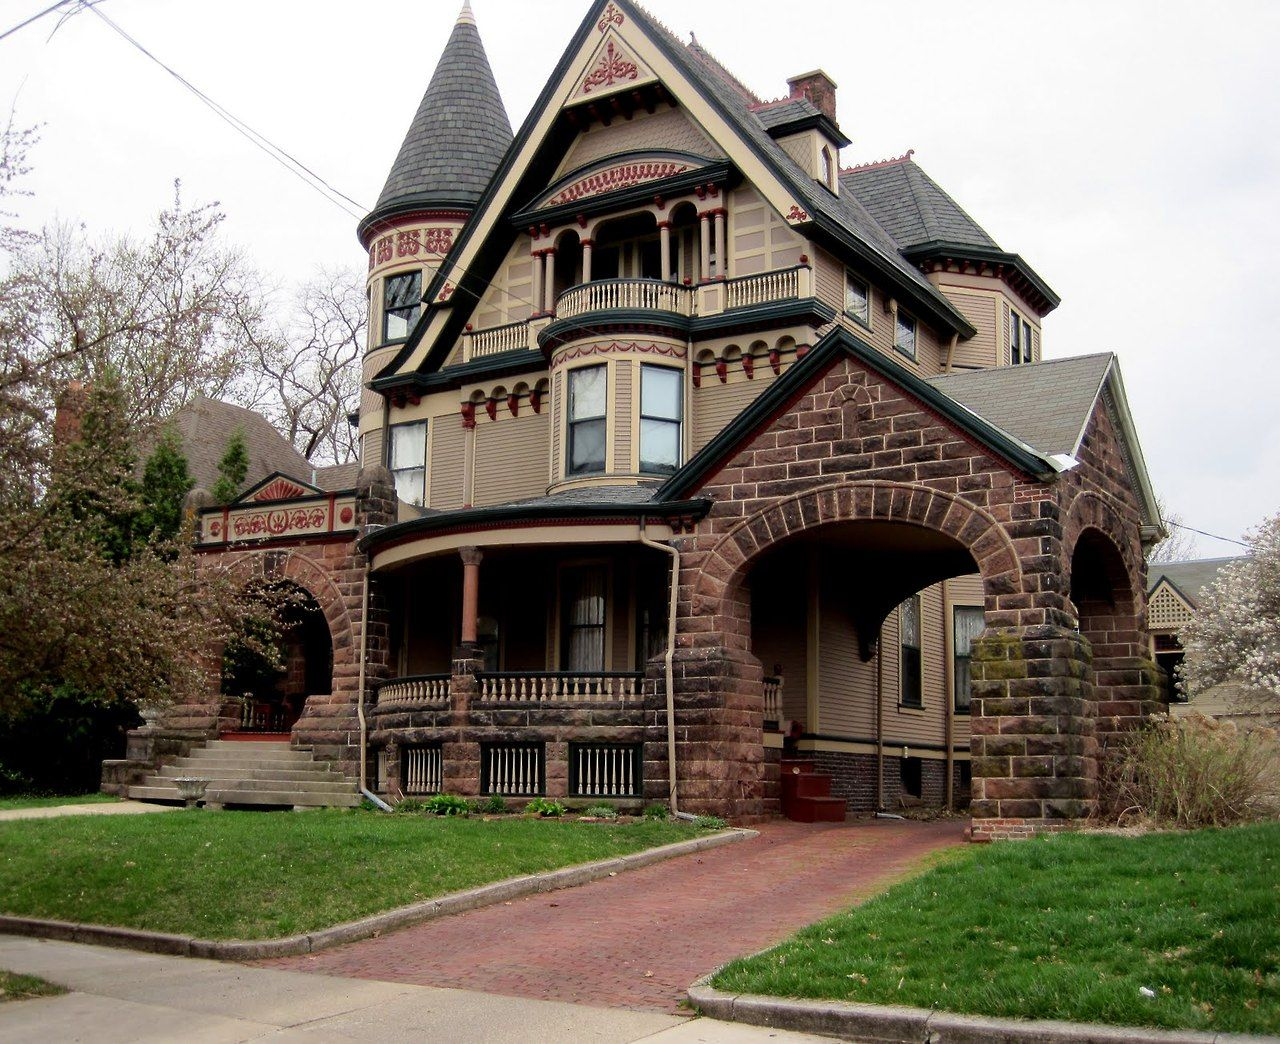 Httpsilenceinthelibrarytumblrcompost - Beautiful houses tumblr